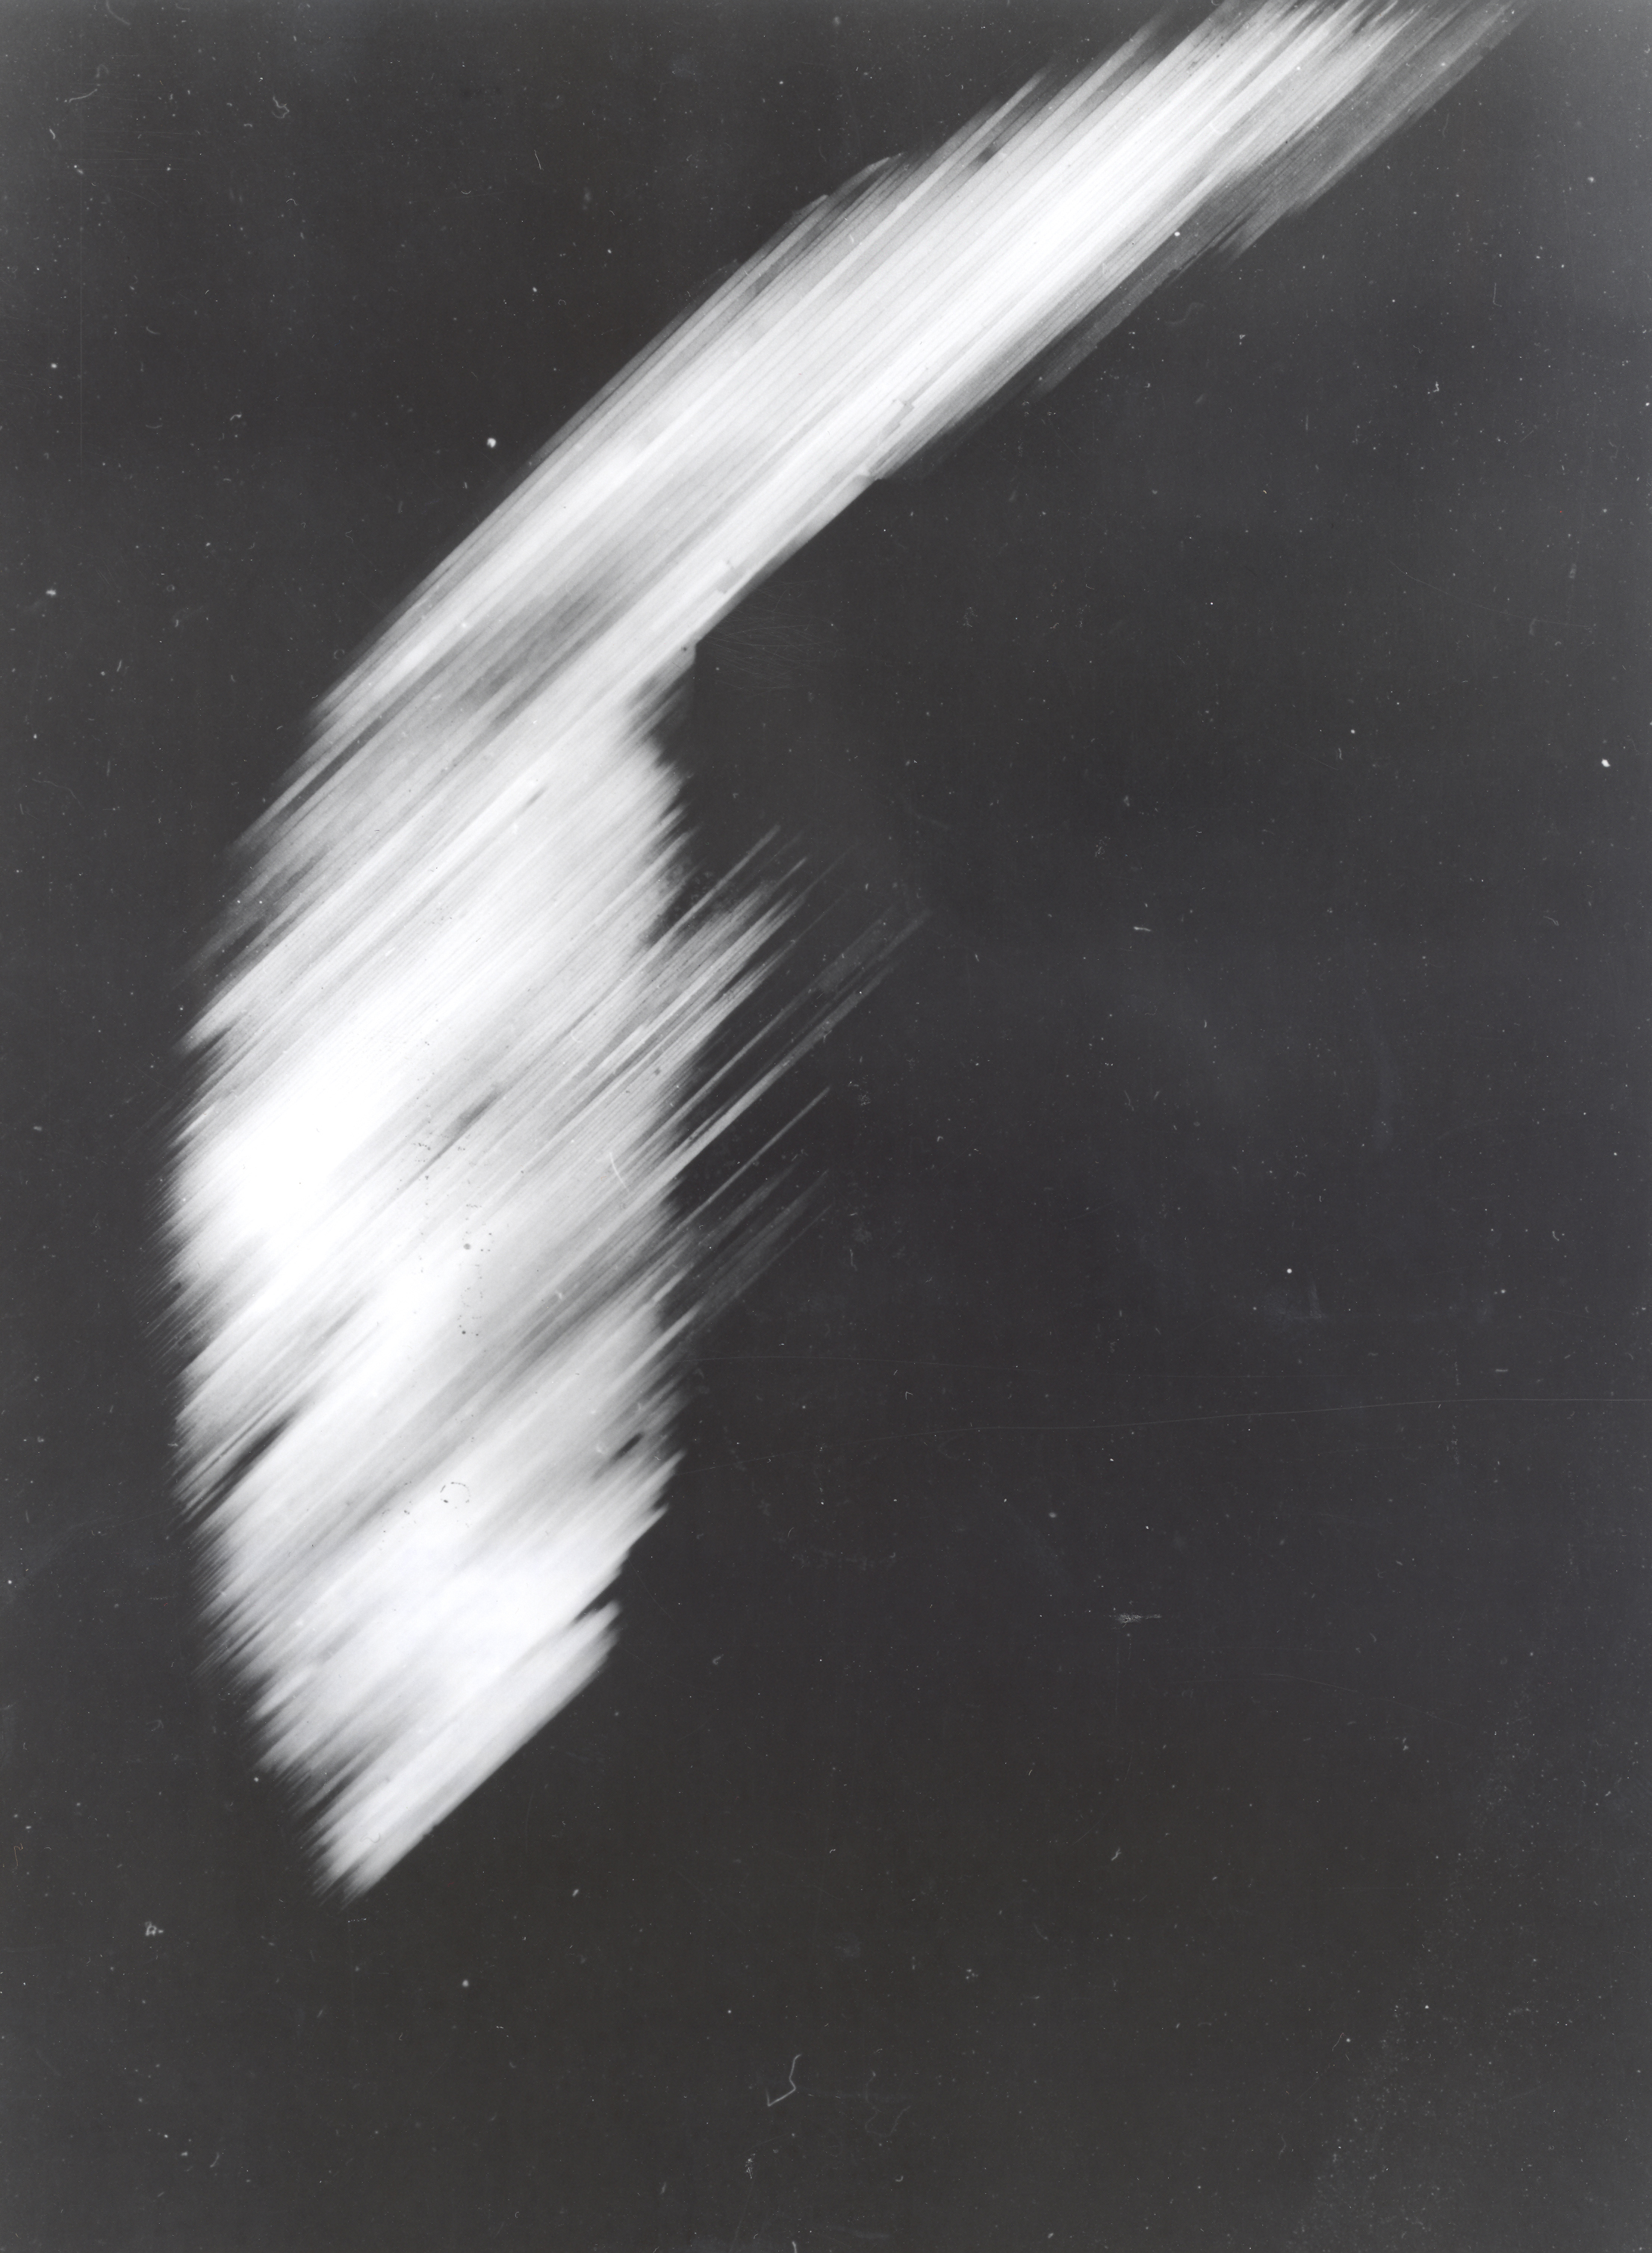 first_satellite_photo_-_explorer_vi.jpg